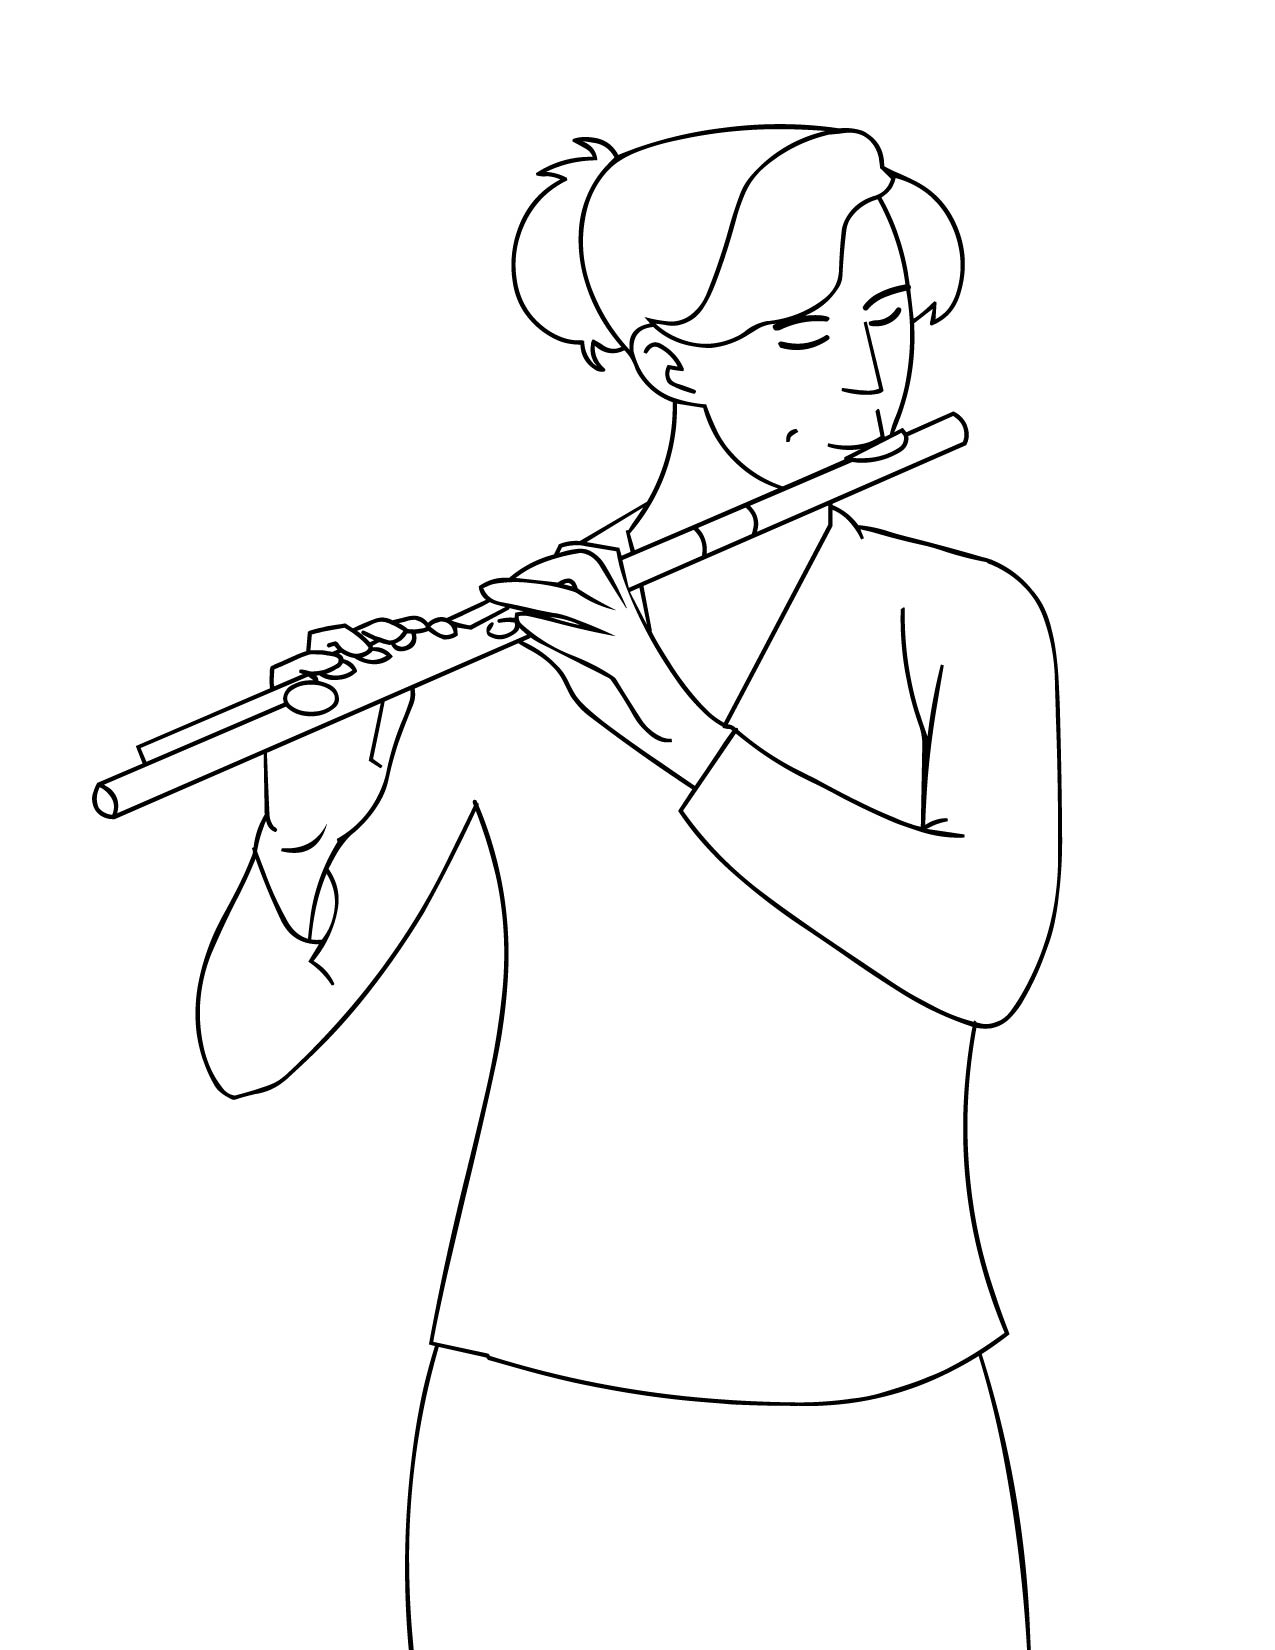 1275x1650 Flute Coloring Pages